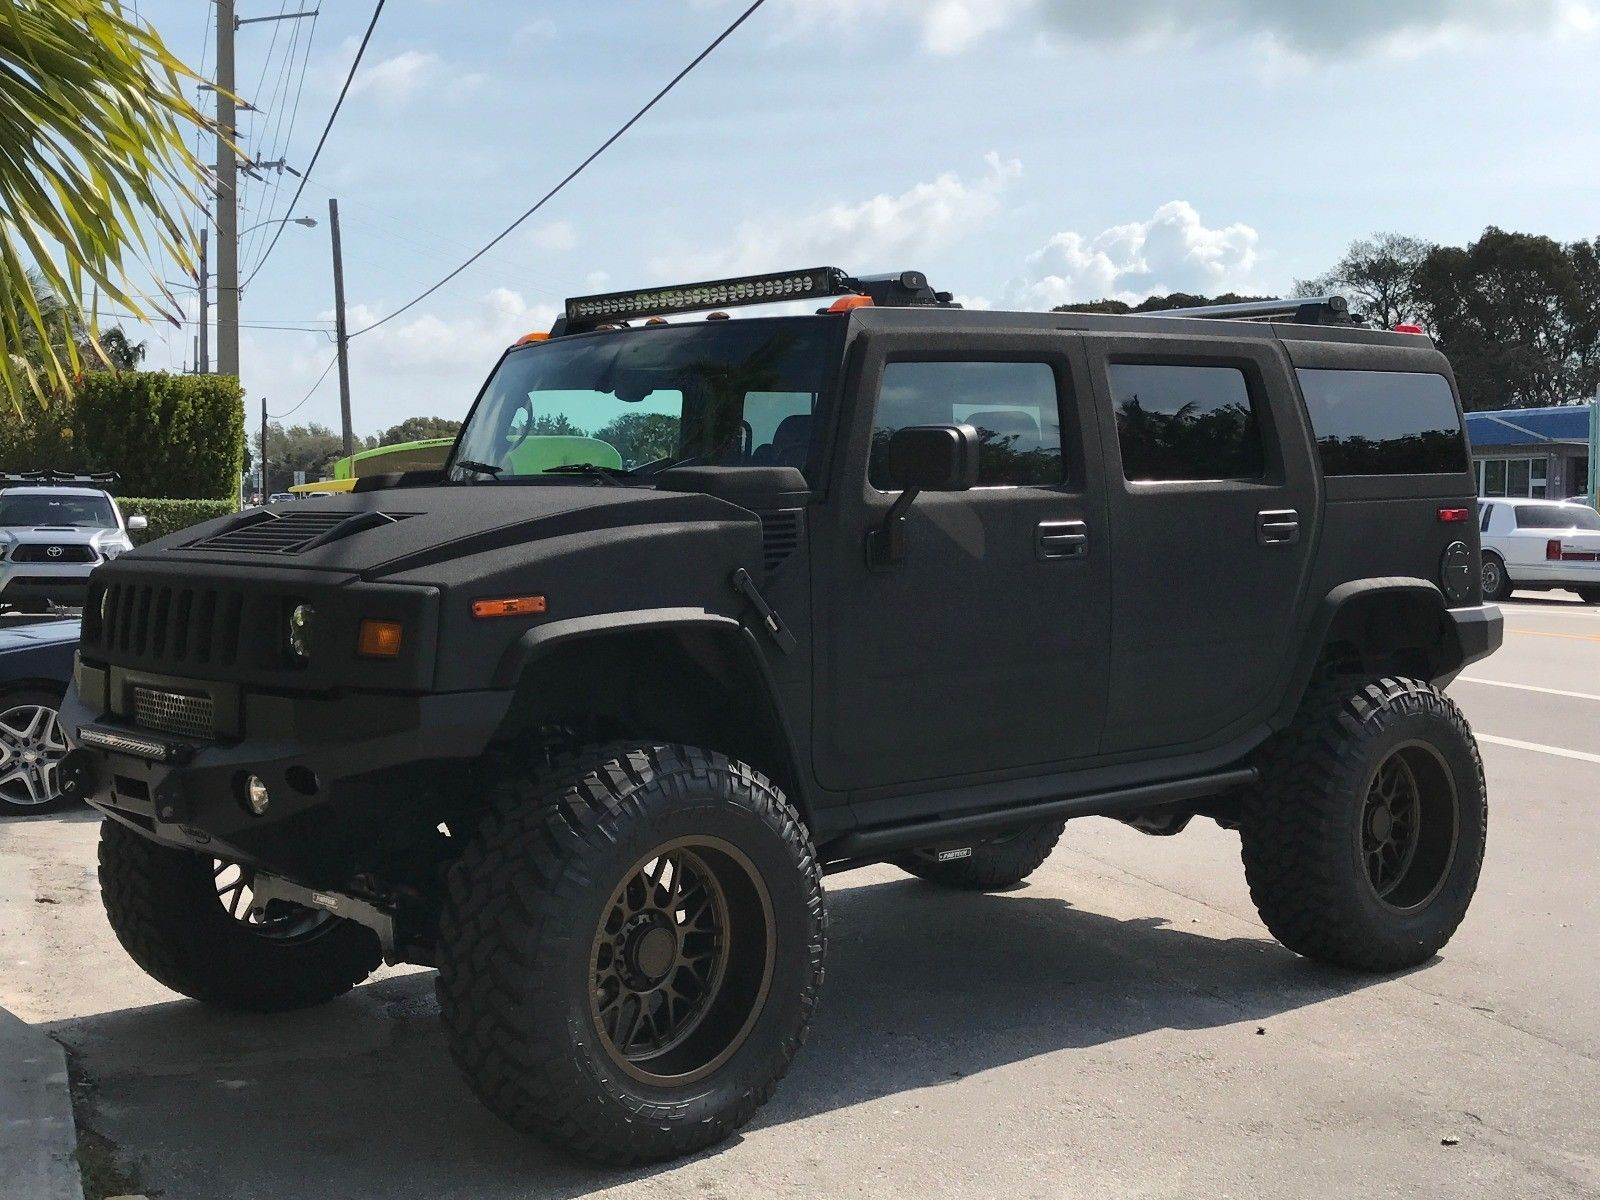 Cool Awesome 2003 Hummer H2 Dupont Kevlar Black Paint Hummer H2 Restored By Sobe Jeep Of Fort Lauderdale 2017 2018 Check More At H Hummer H2 Hummer Hummer Cars